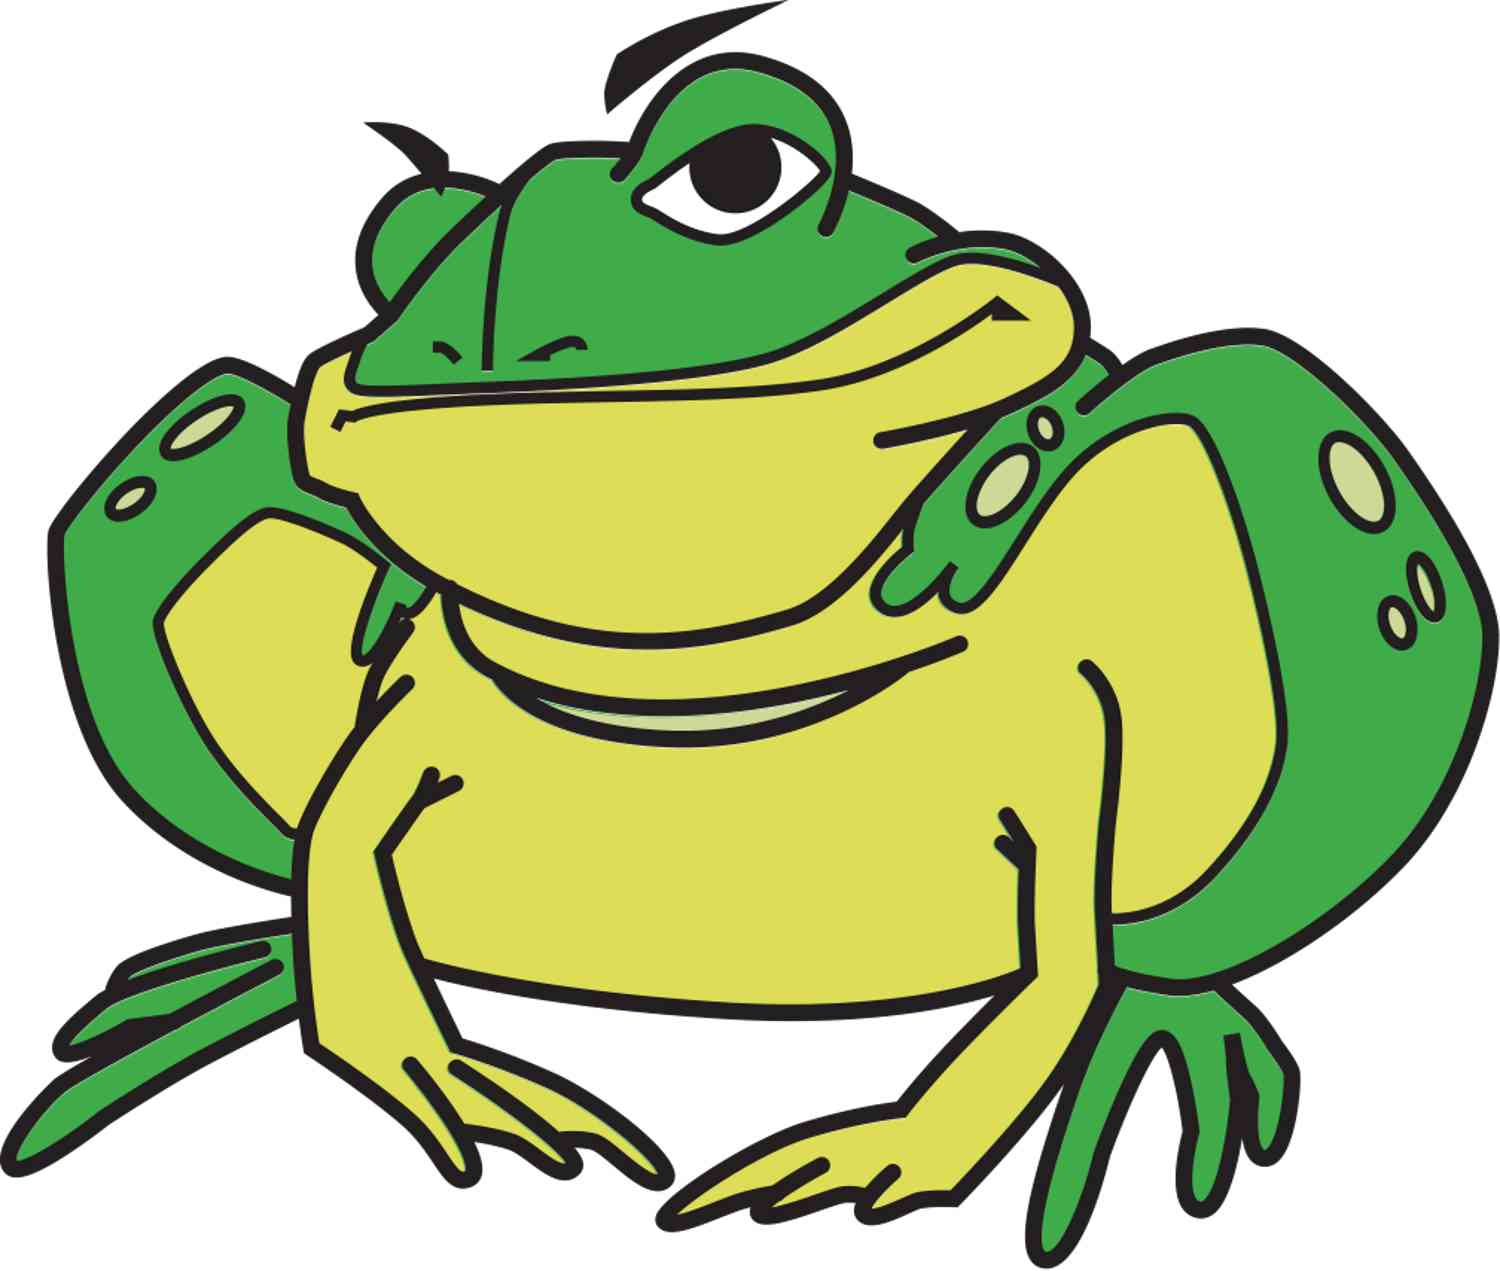 A cartoon character of a handsome toad